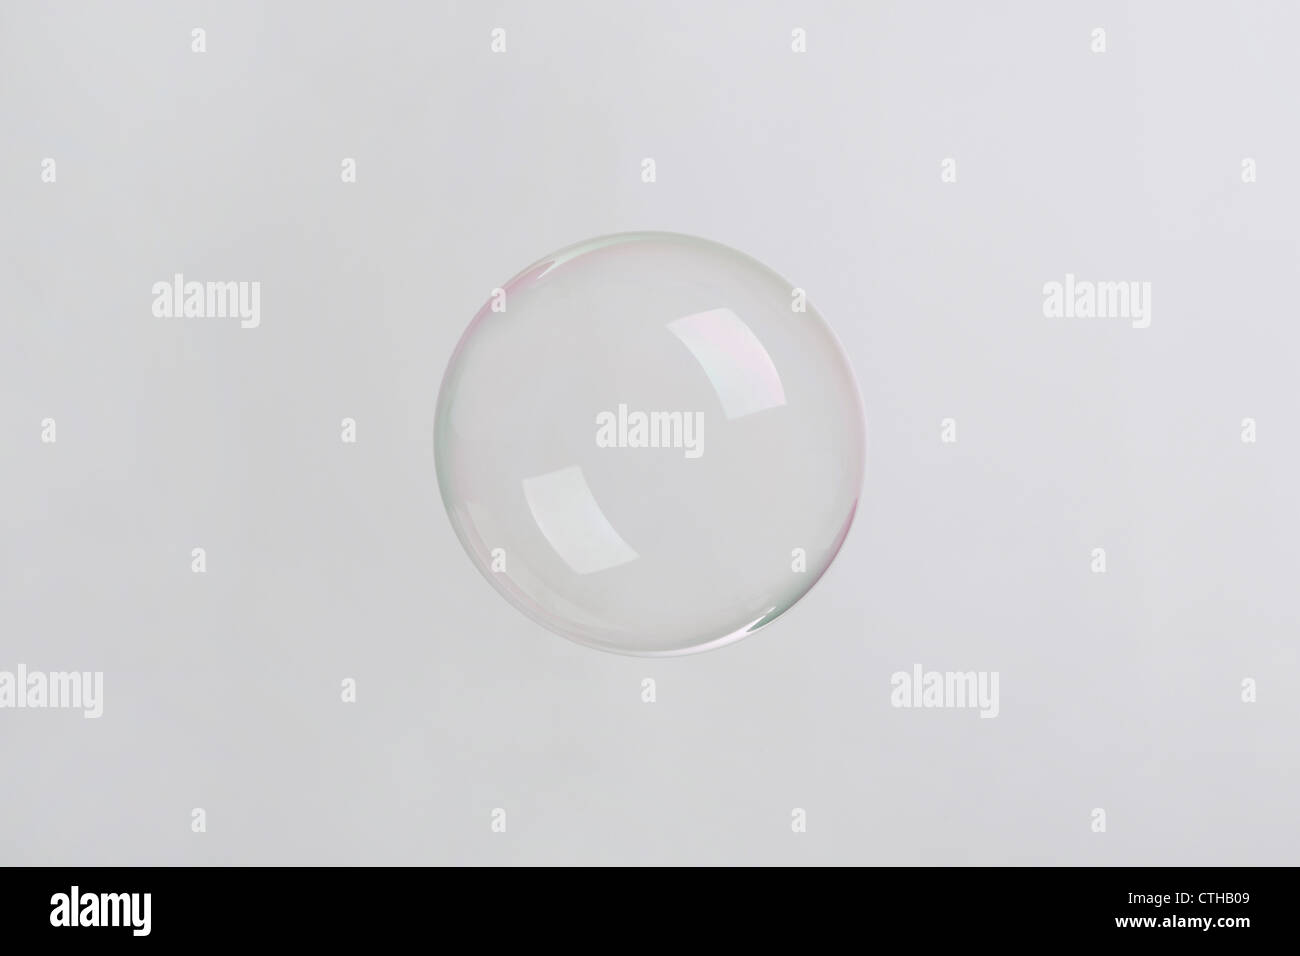 soap bubble on neutral background - Stock Image